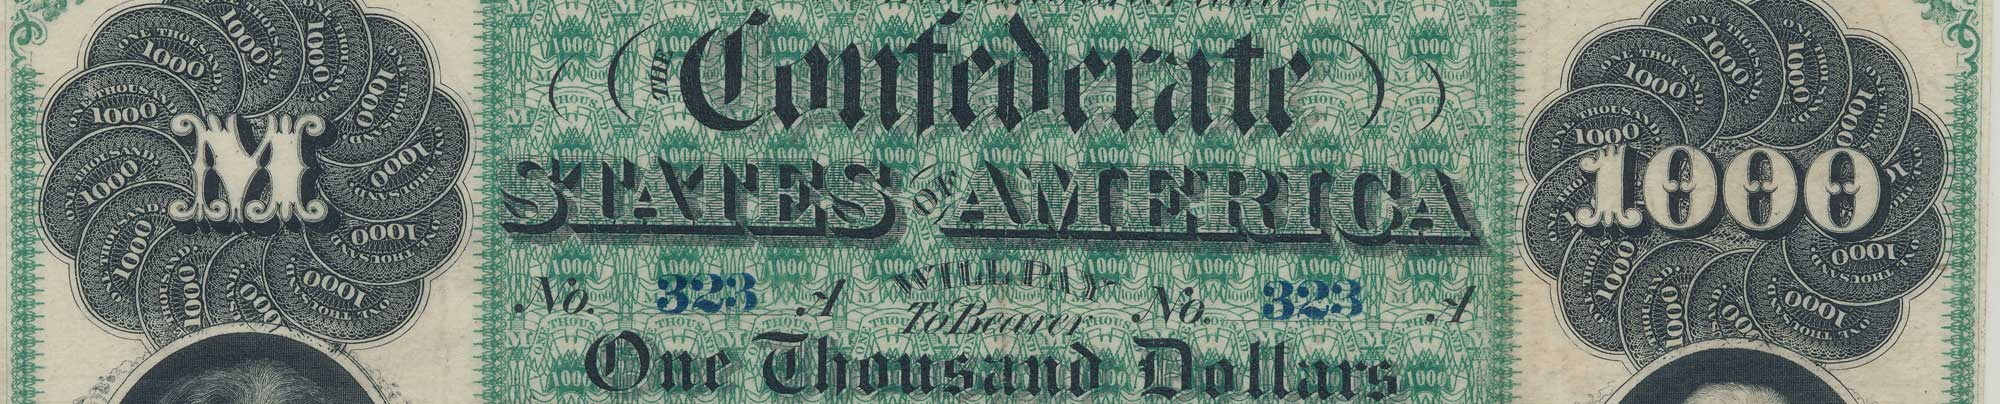 Confederate one thousand dollar bill